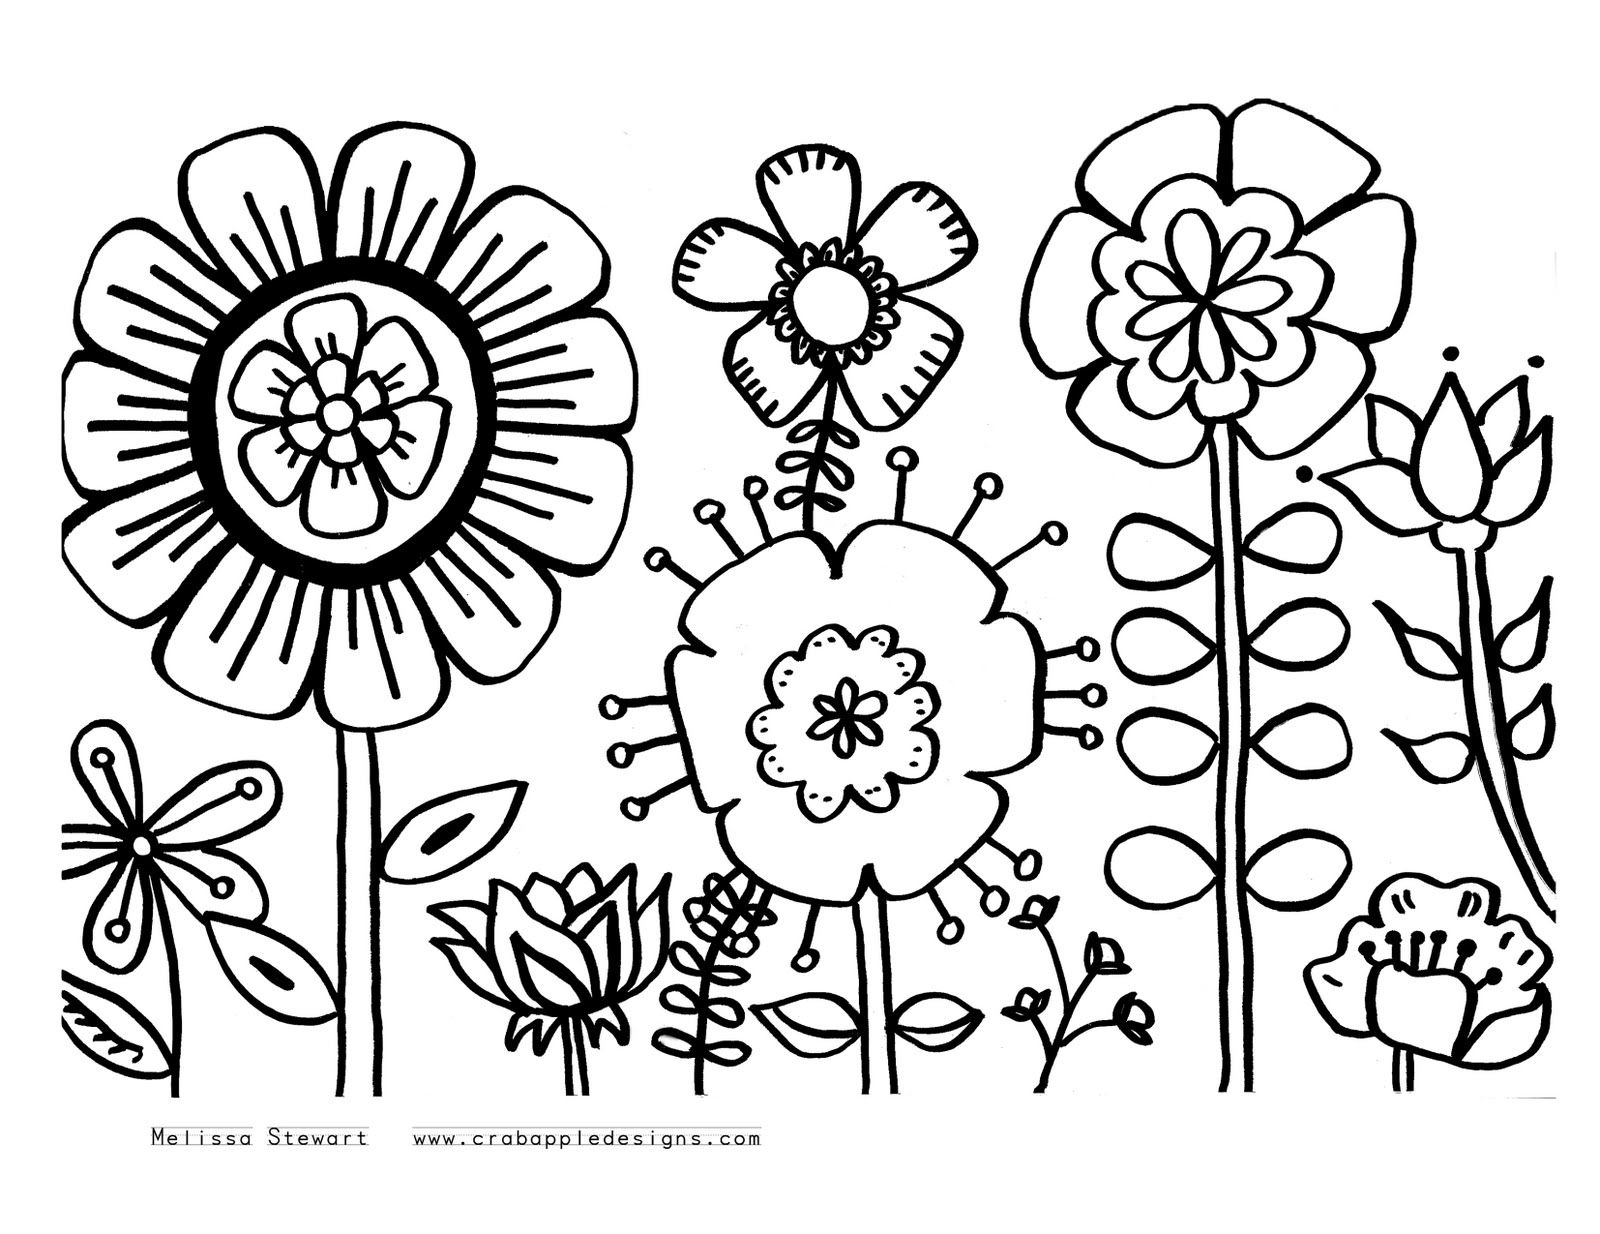 Flower coloring pages paint sample butterflies doodling ideas